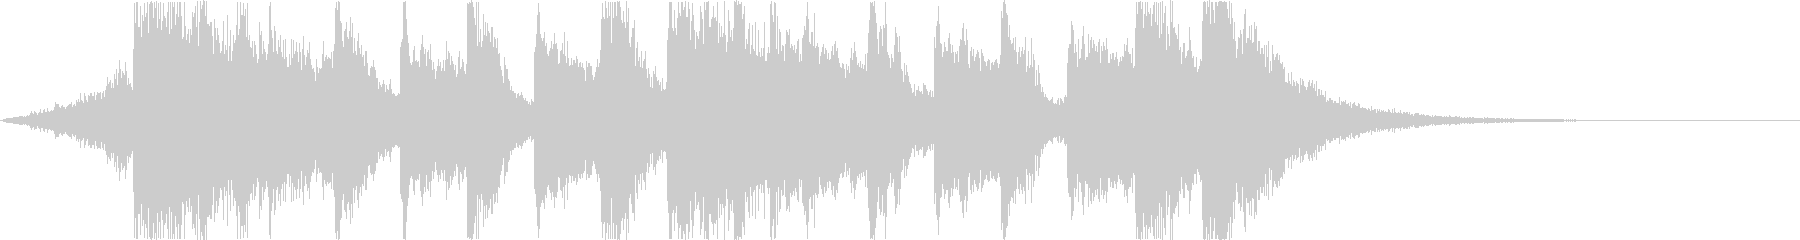 Comical and fun Halloween horror song e's unreproduced waveform